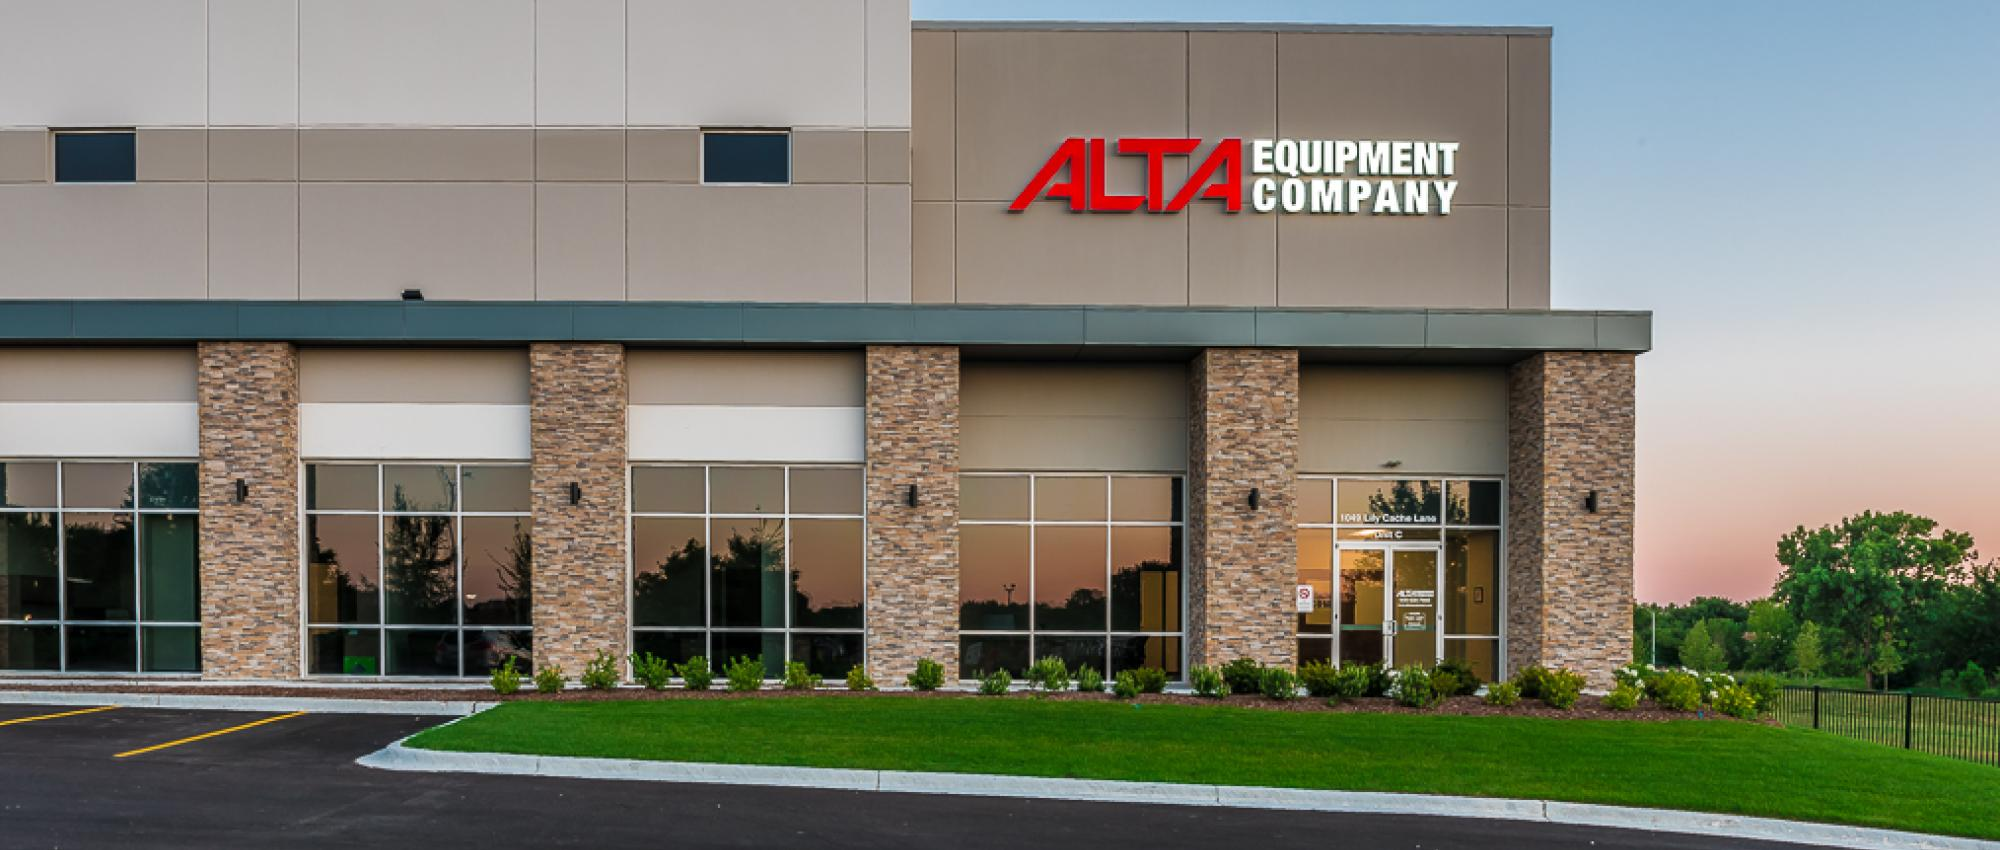 Alta Equipment Company building and office